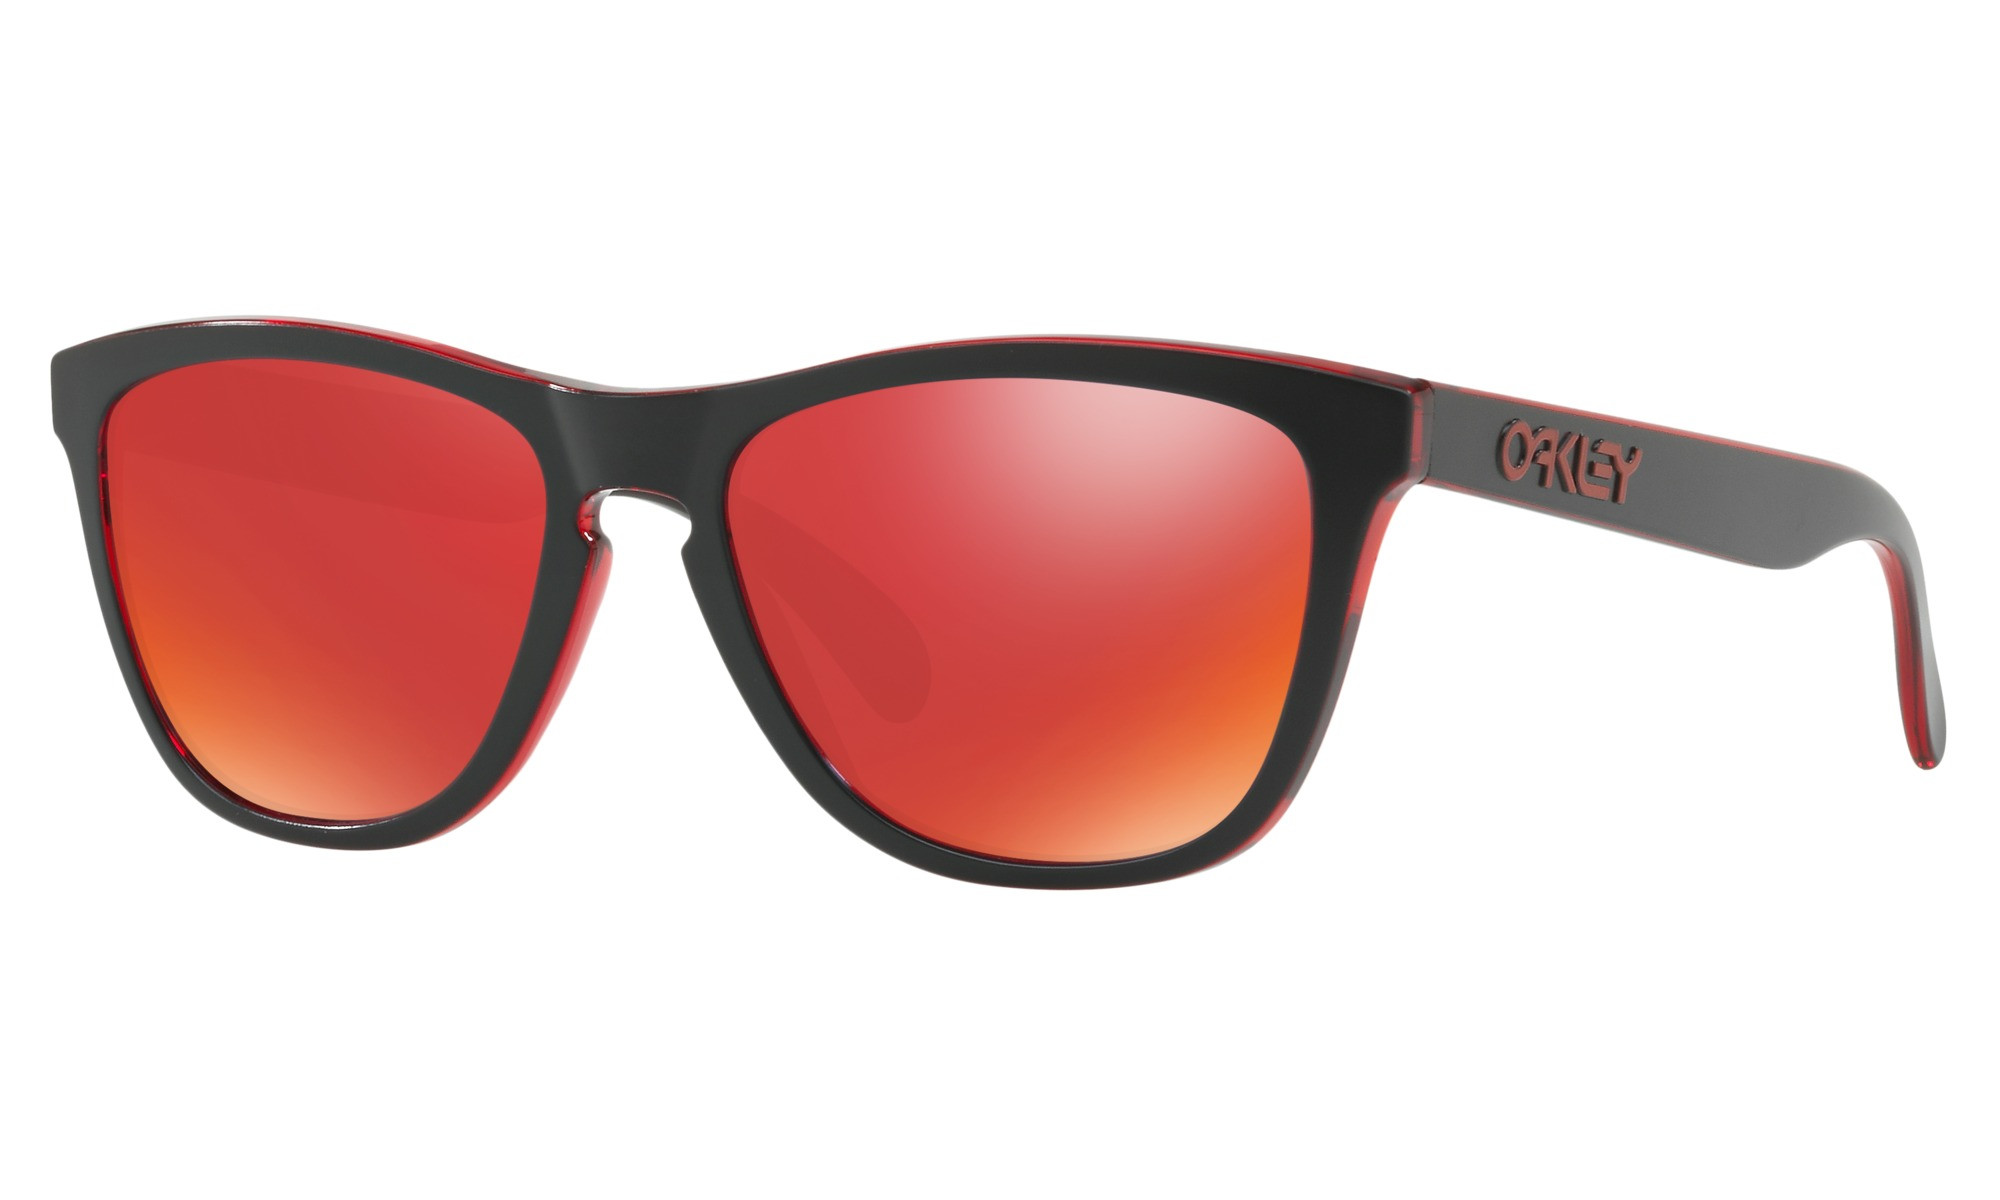 71f0411be34d0 Sentinel Thumbnail 1. Sentinel Oakley Sunglasses - Frogskins - Eclipse Red